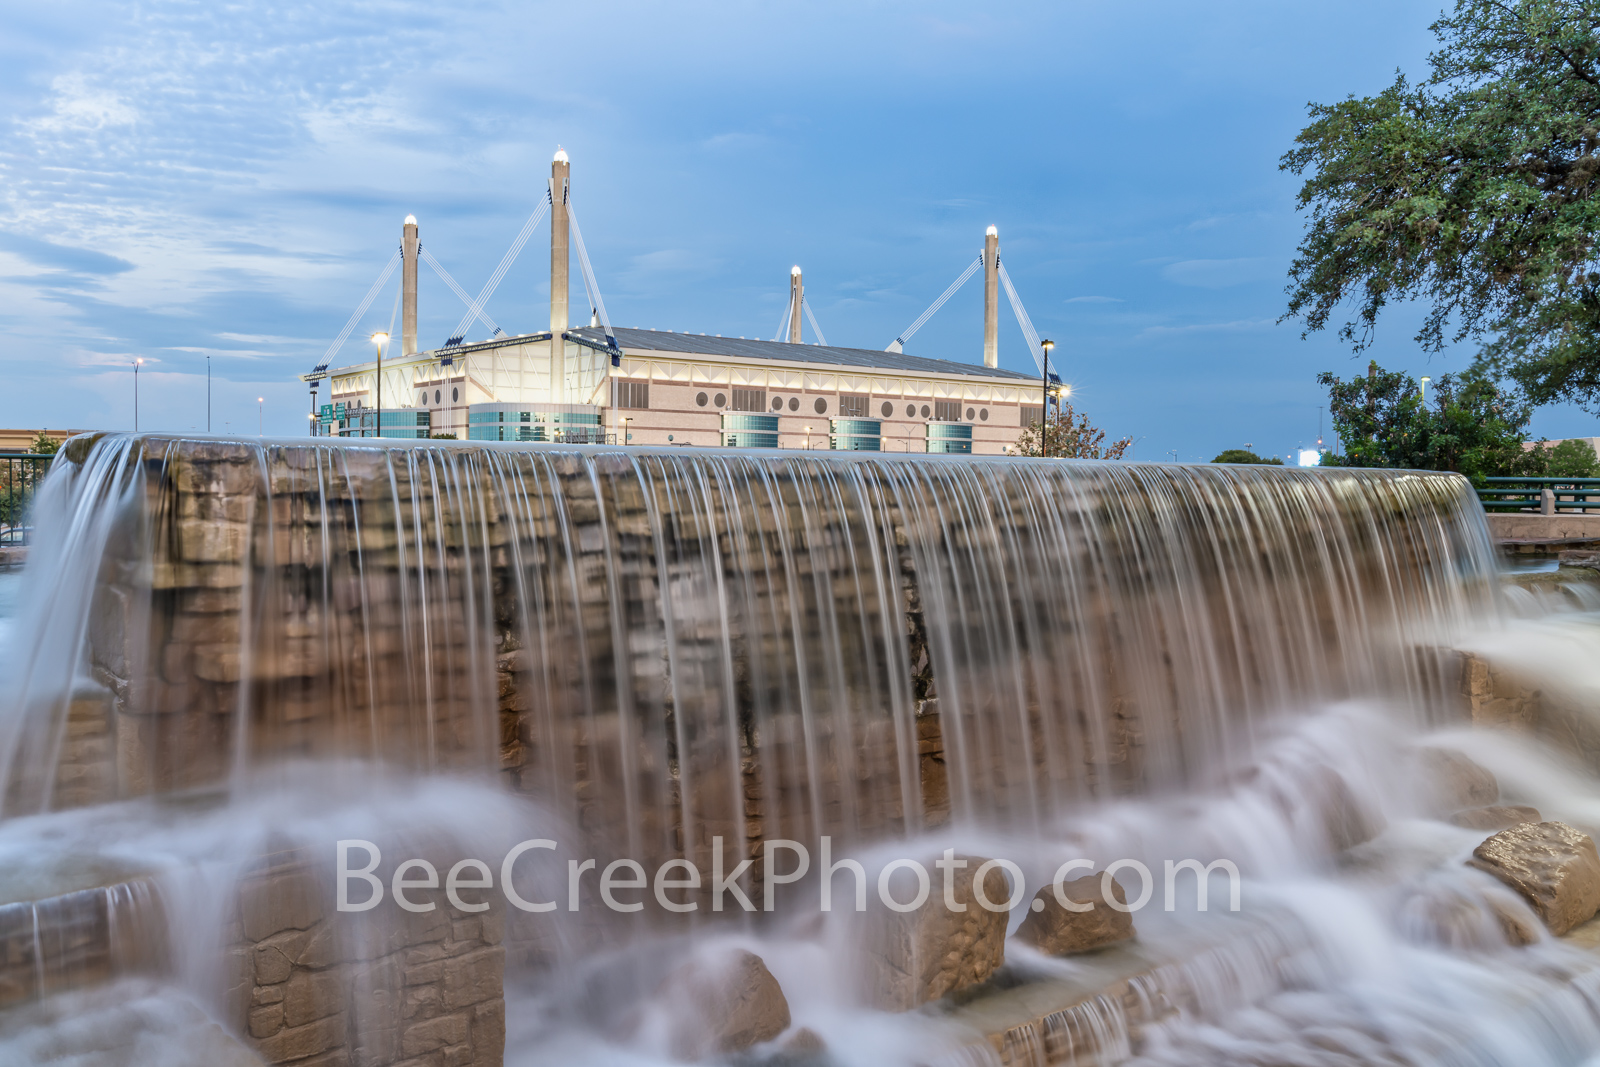 HemisFair Park San Antonio - This is one of the new water features in the Hemisphere park in downtown San Antonio. In this view...